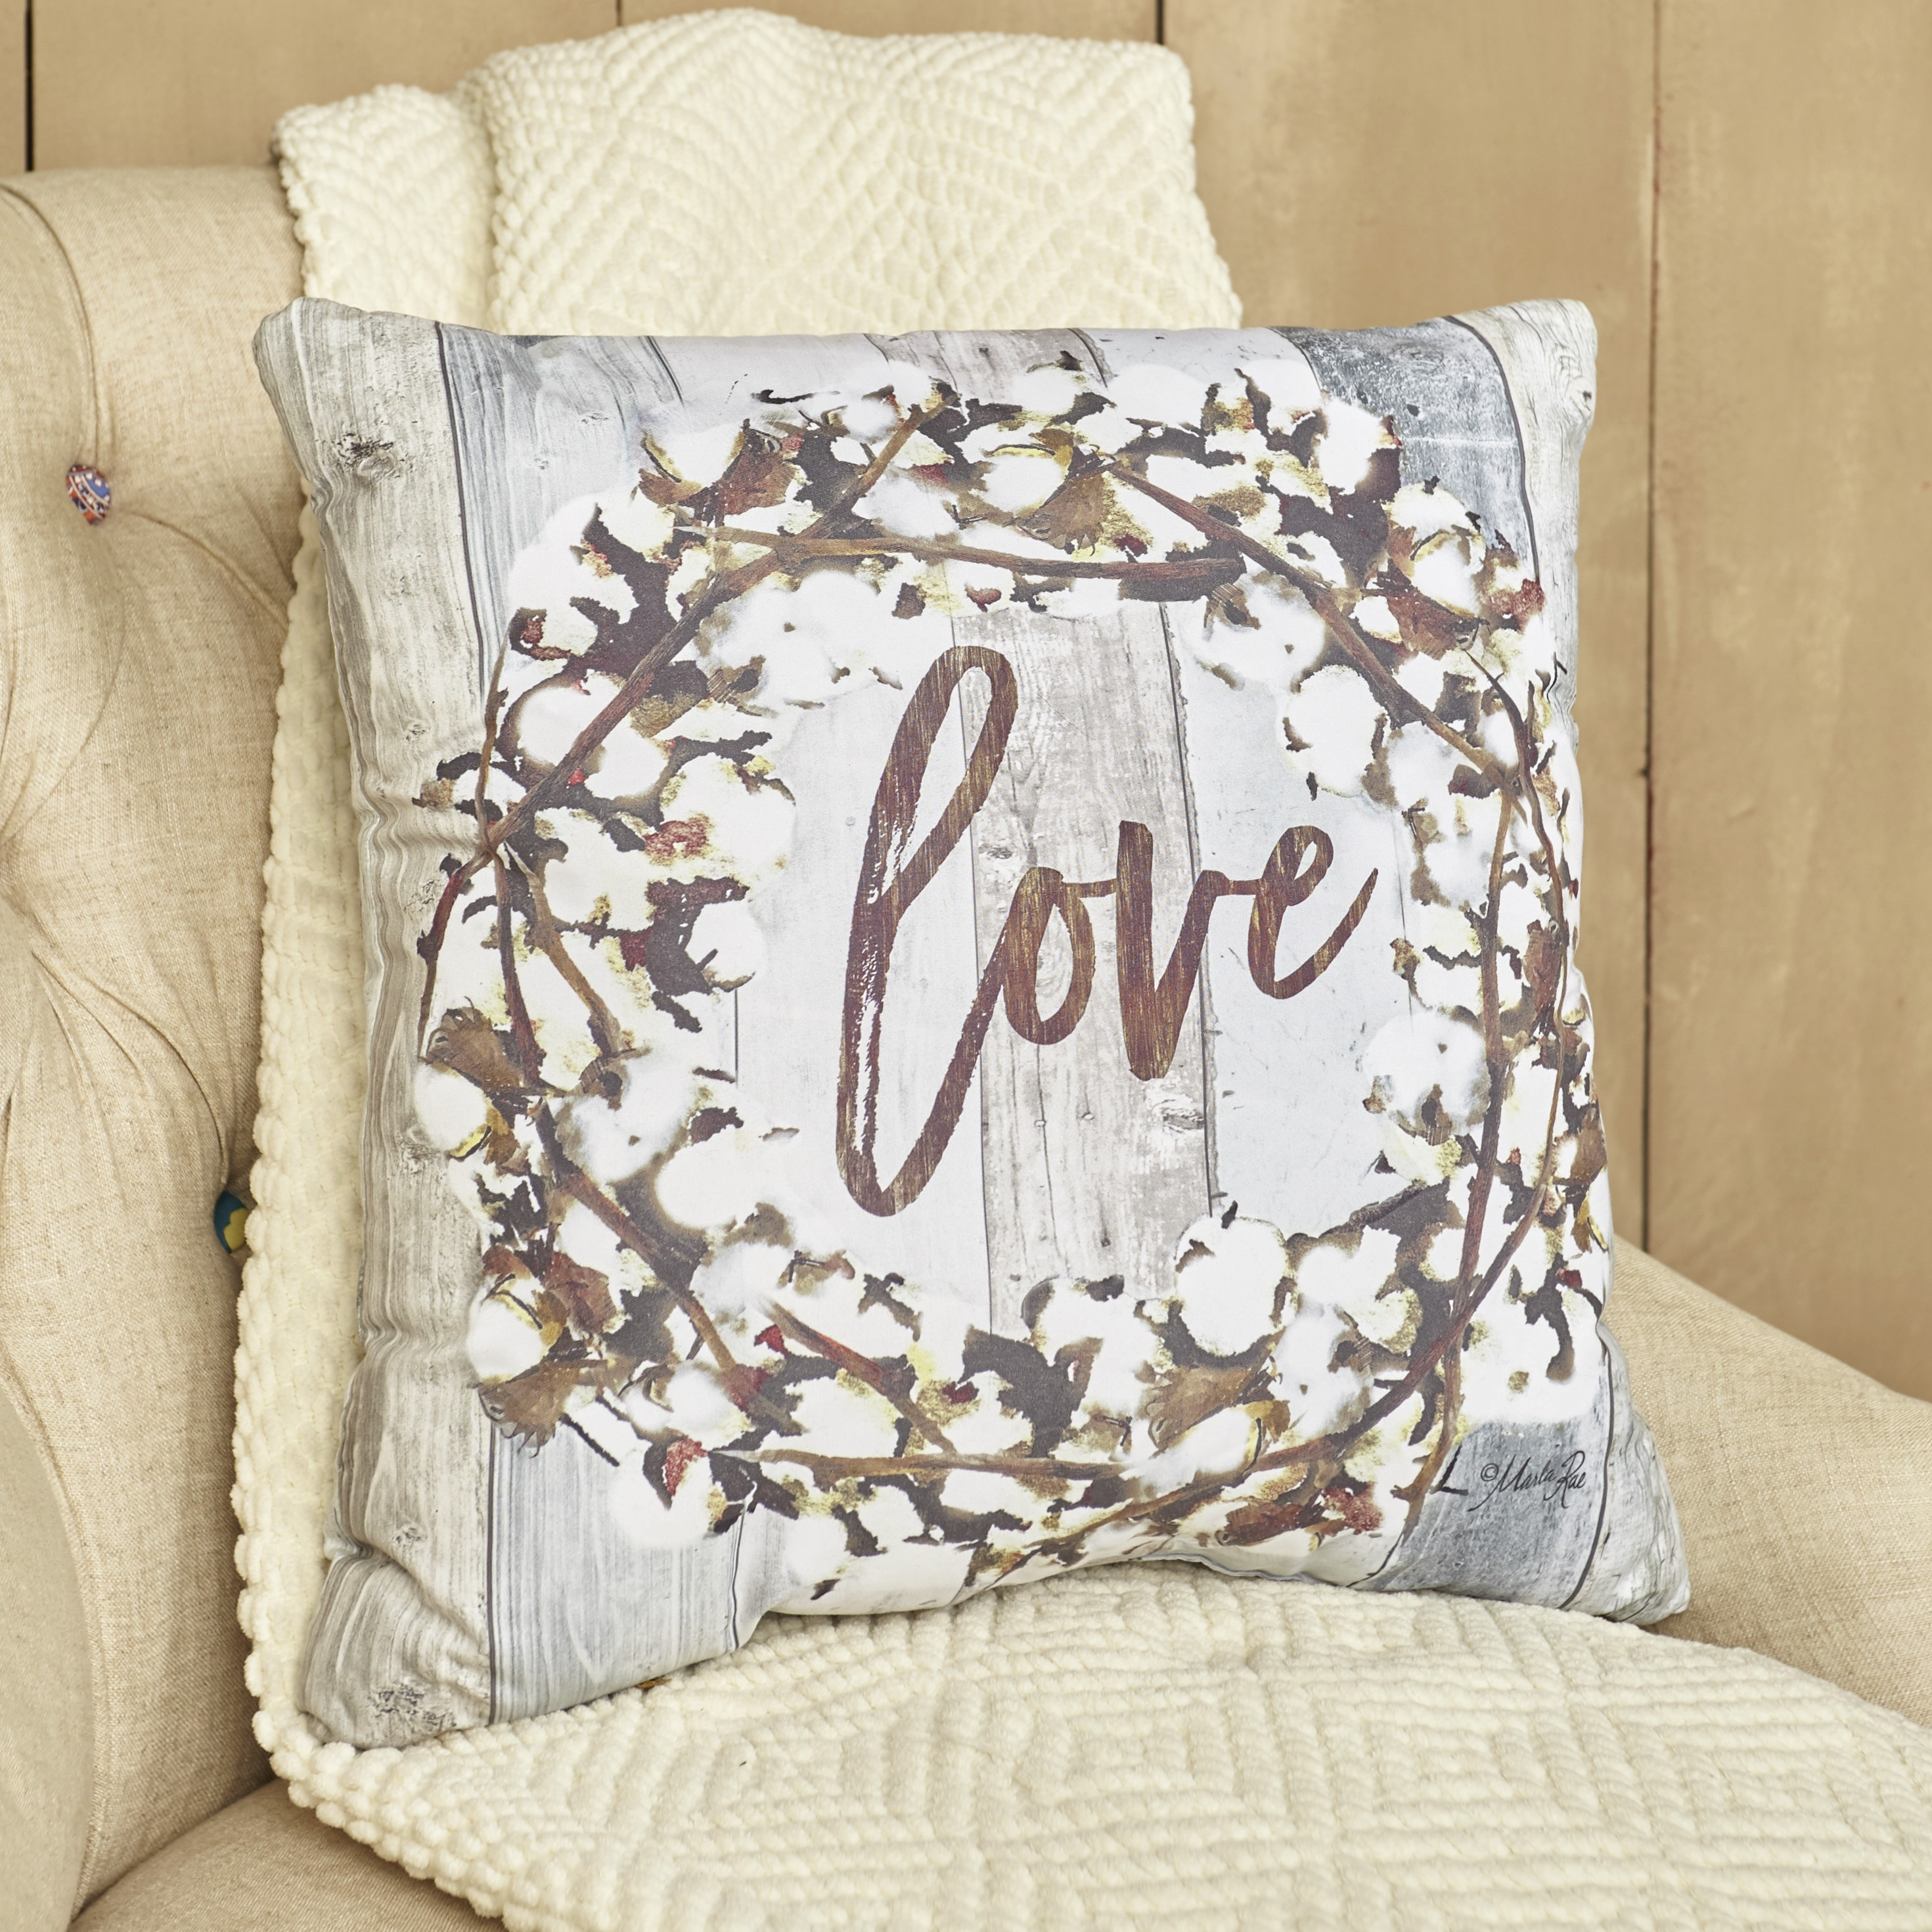 Cotton Boll Furniture Accent Pillow - Love - Farmhouse 17